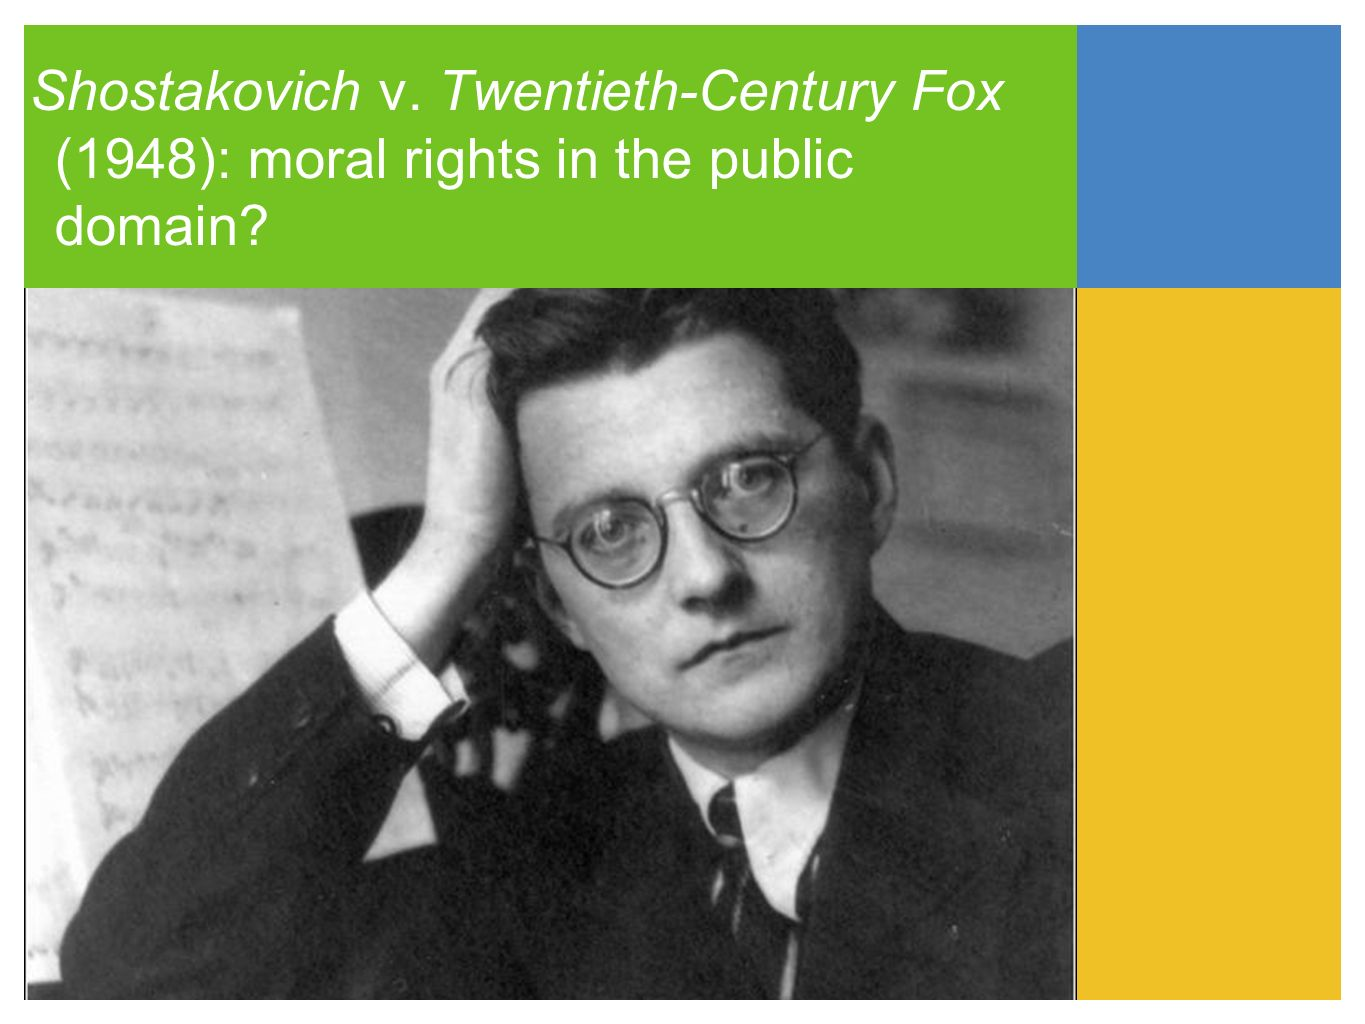 Shostakovich v. Twentieth-Century Fox (1948): moral rights in the public domain